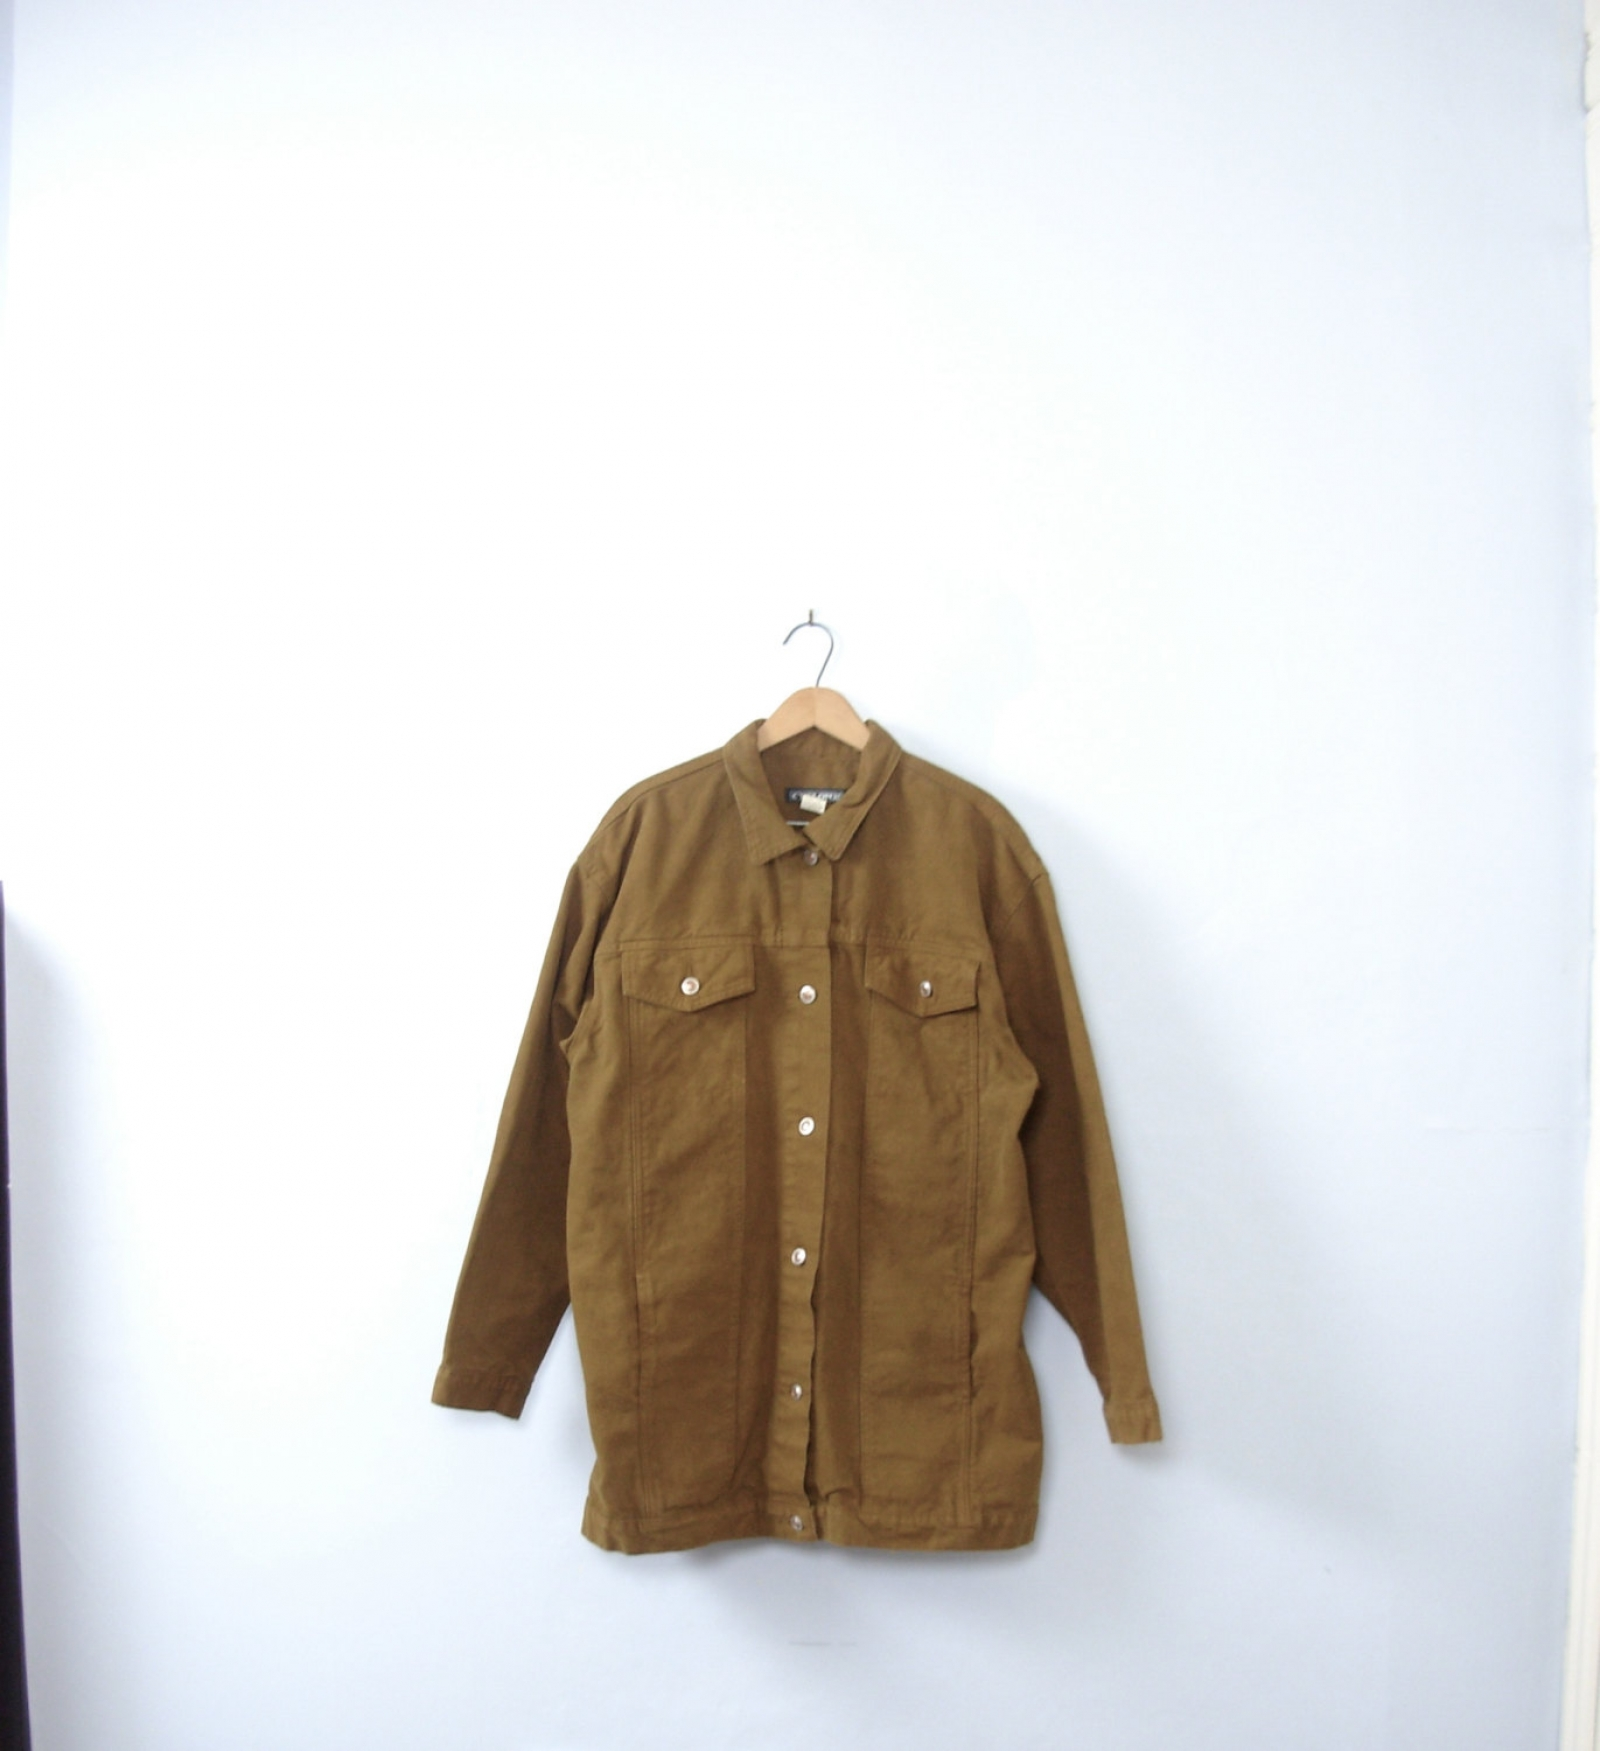 iron pants forge in men patagonia forged jackets canvas ranch barn jacket s workwear womens hemp launches barns